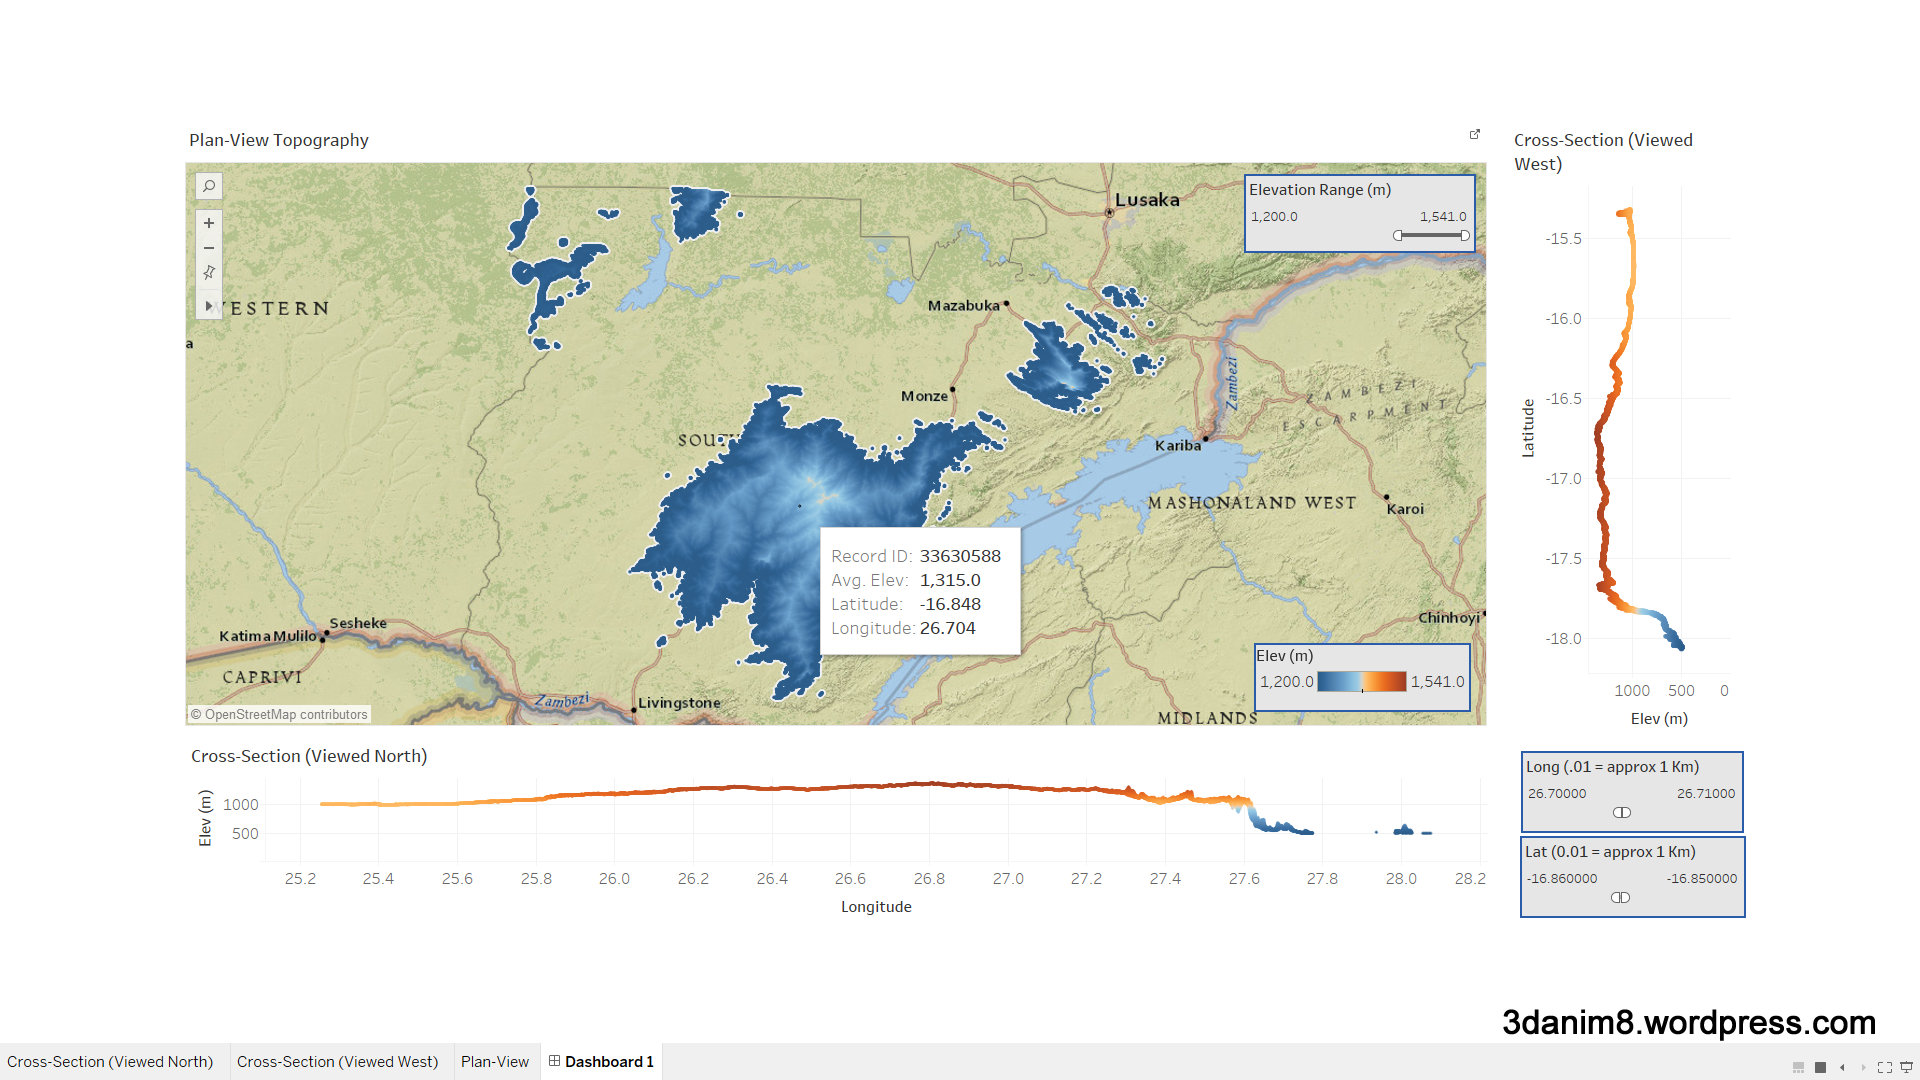 Test 1 of Tableau Vs Power BI: Topographic Mapping | Data Blends